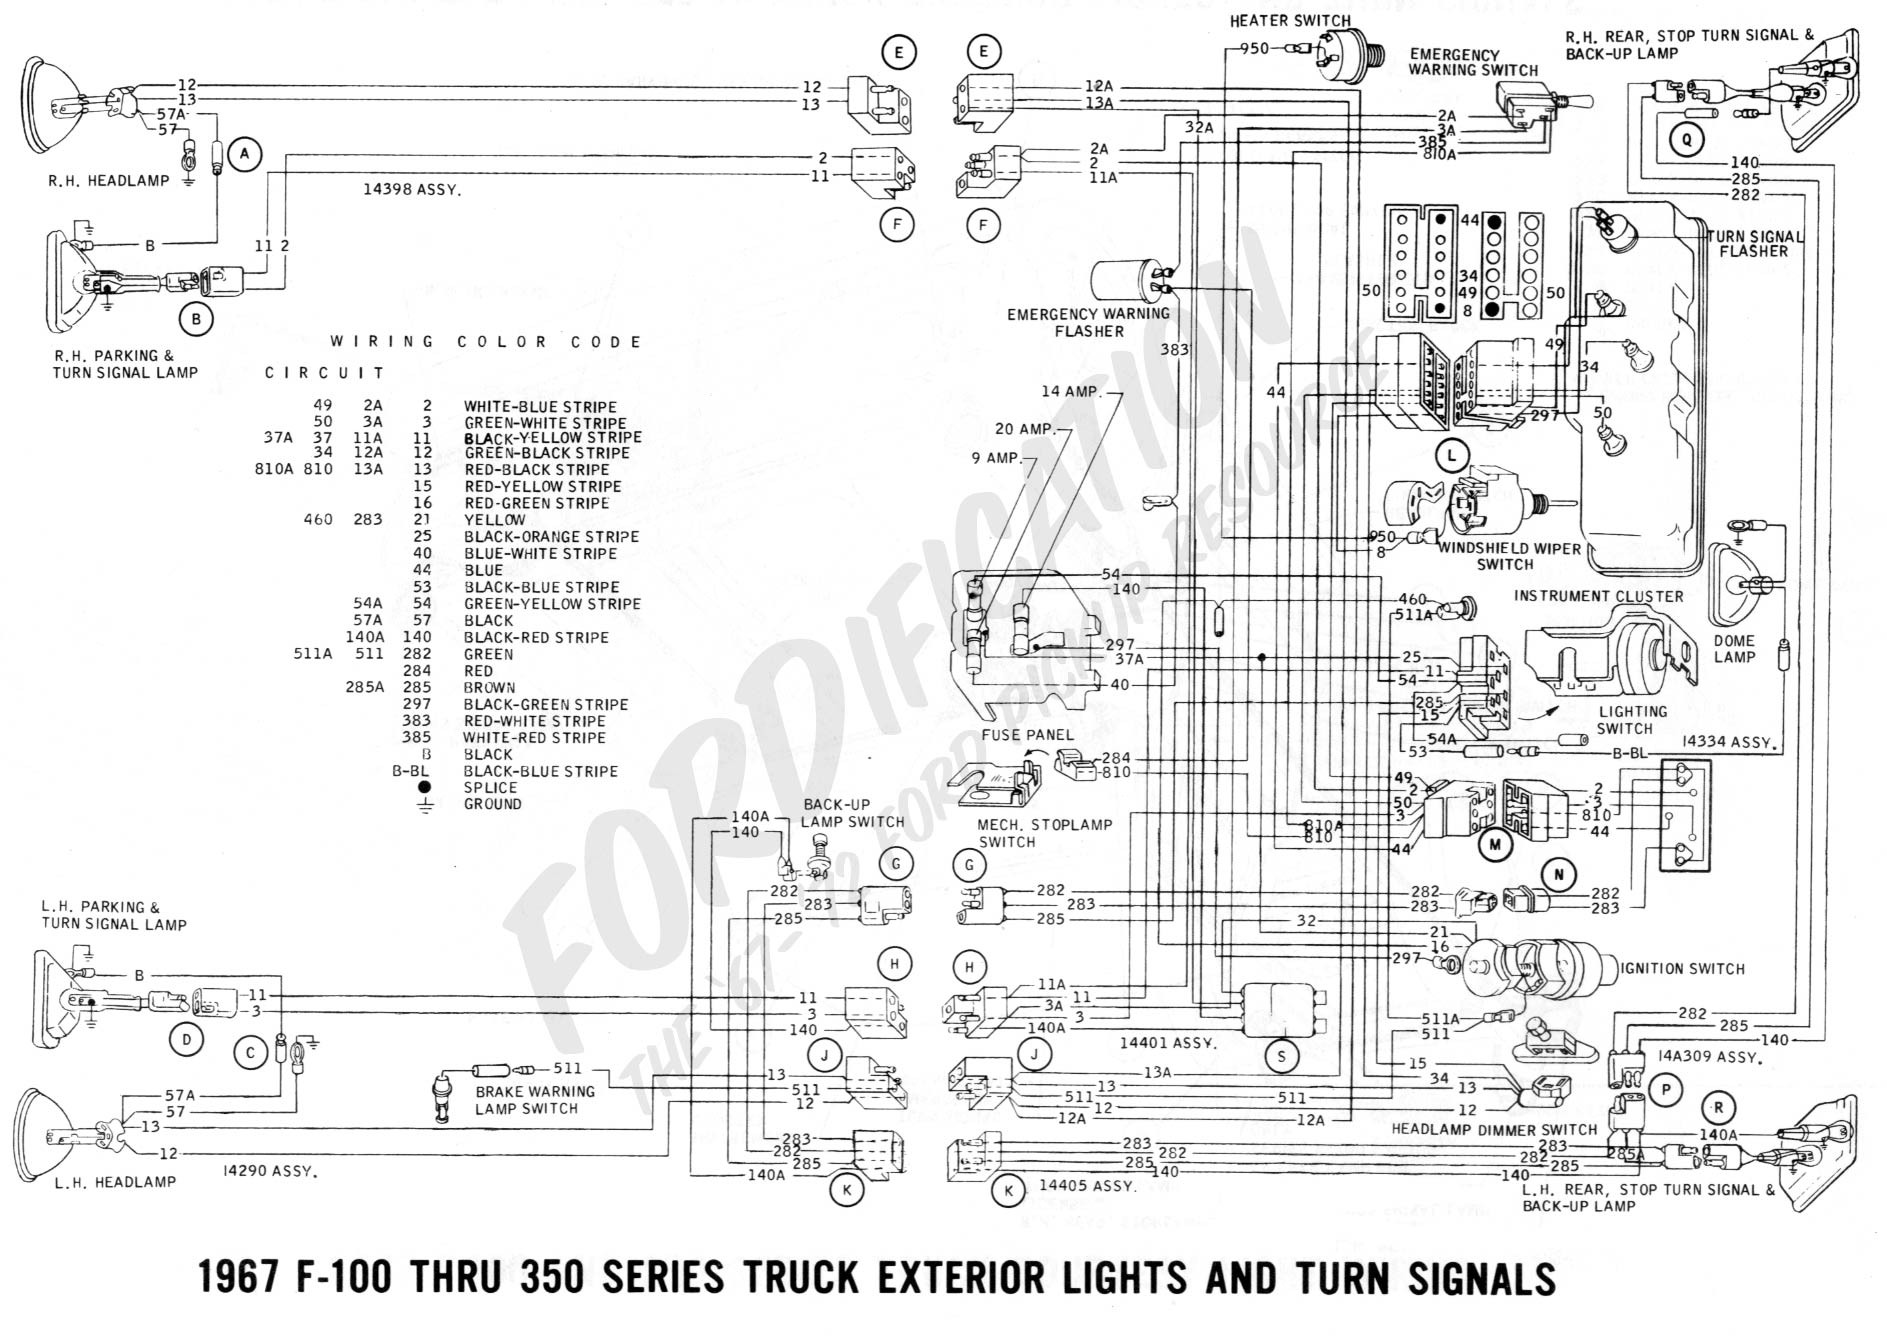 1993 ford bronco alternator wiring schematic diagram 145 rgr Ford 302 Alternator Wiring Diagram pertronix wiring diagram for a 1972 f100 wiring diagram blog alernator wiring ford pertronix wiring diagram